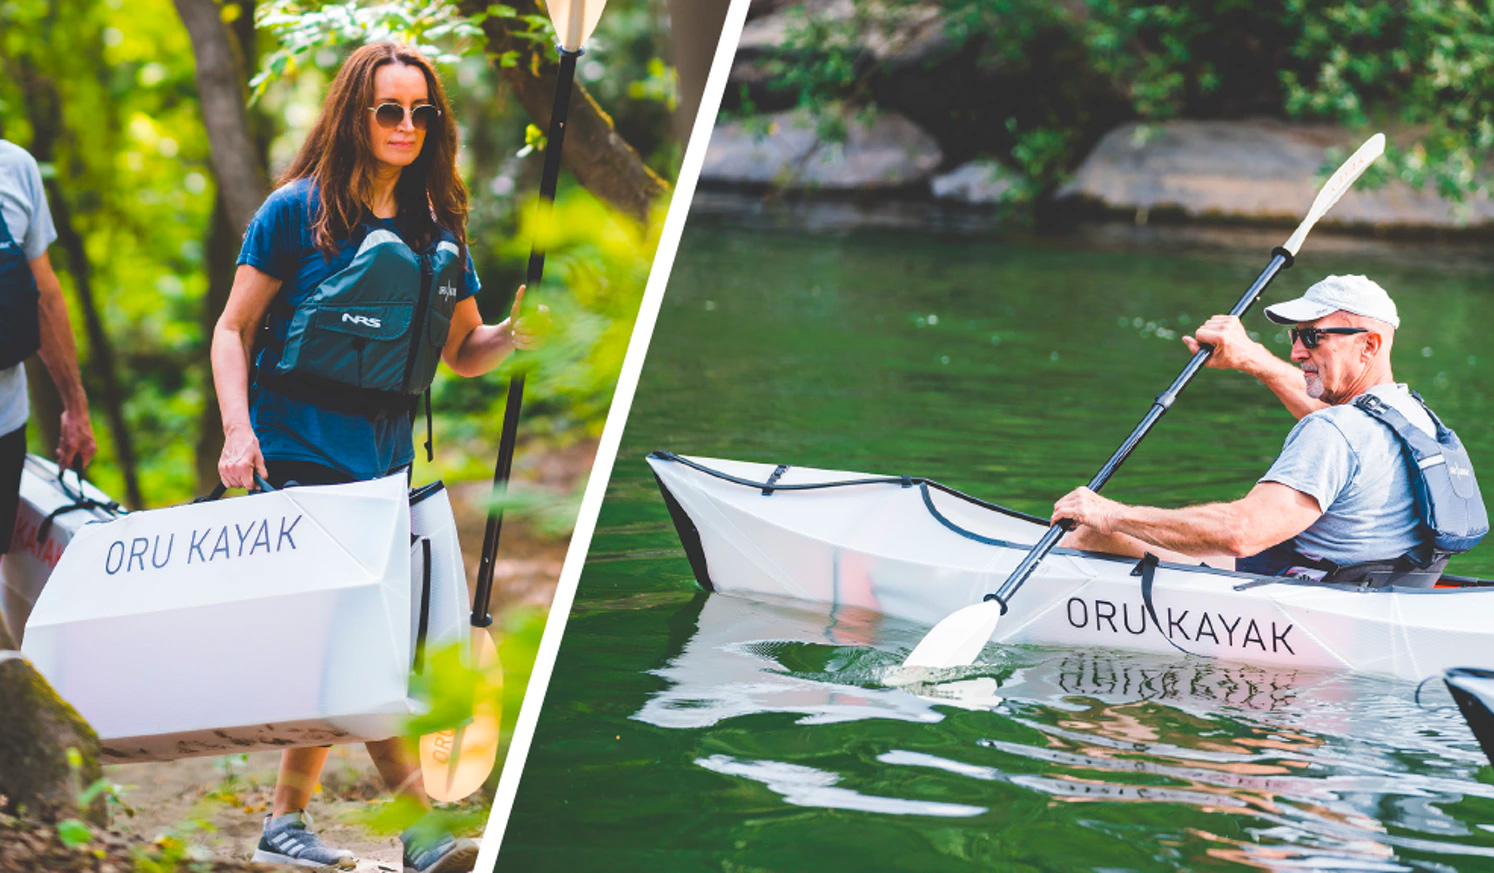 Oru Introduces Origami-Style Inlet Ultra-Portable Kayak at werd.com